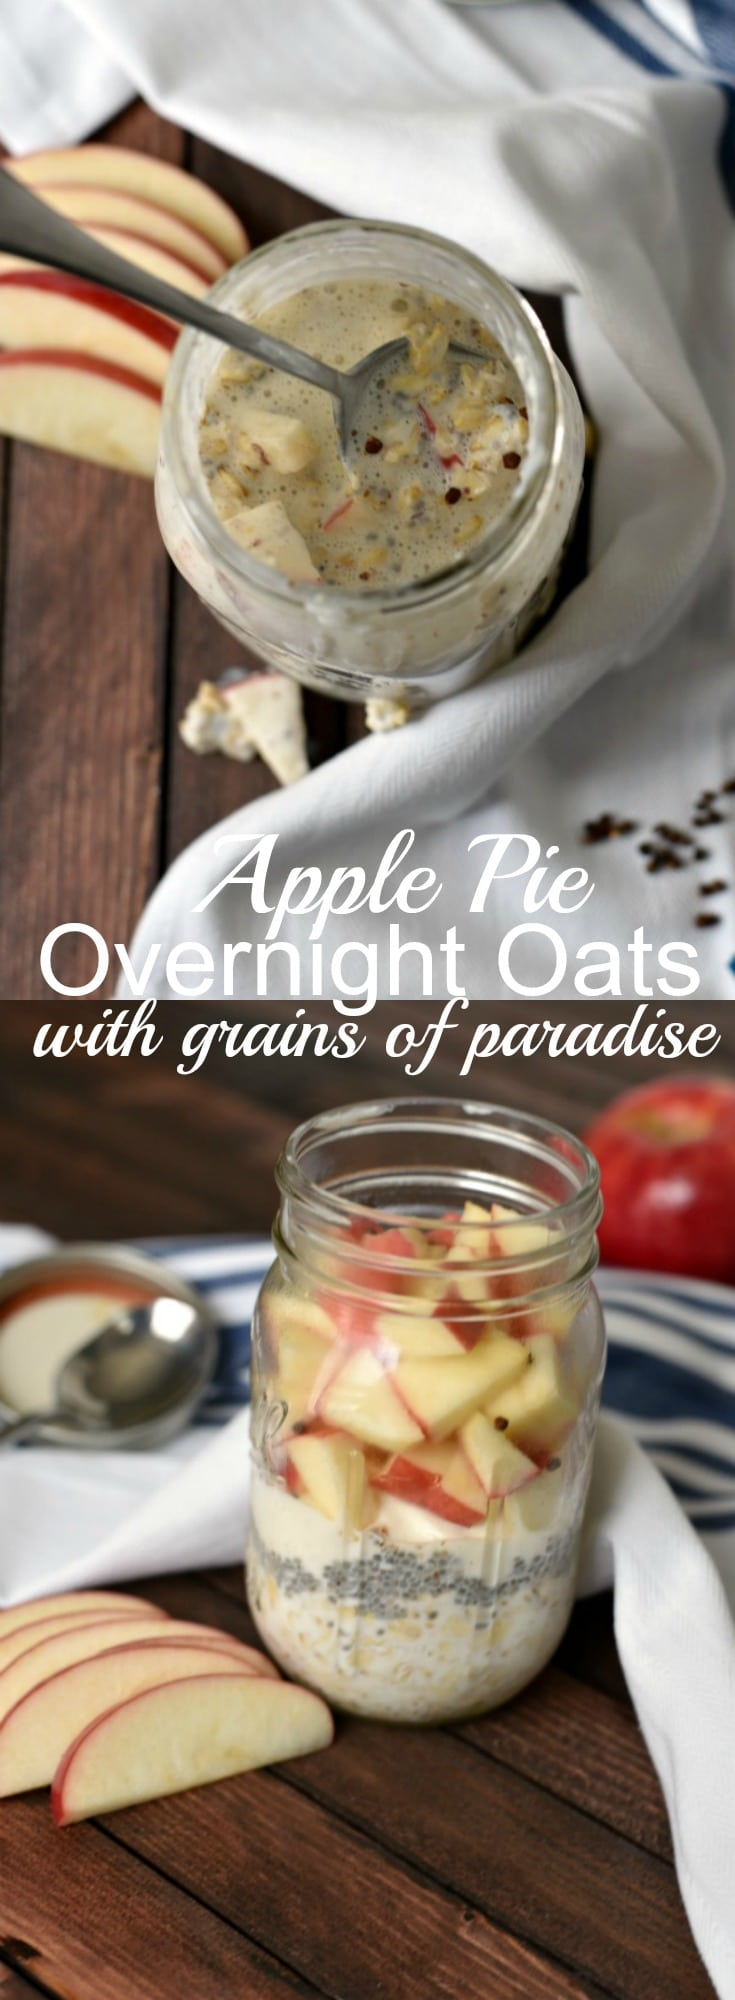 Breakfast won't get easier than these easy Apple Pie Overnight Oats with Grains of Paradise! You only need 5 minutes of prep time and no cooking for a hearty and delicious breakfast! Easy Breakfast, Overnight Oats Recipe, Grains of Paradise